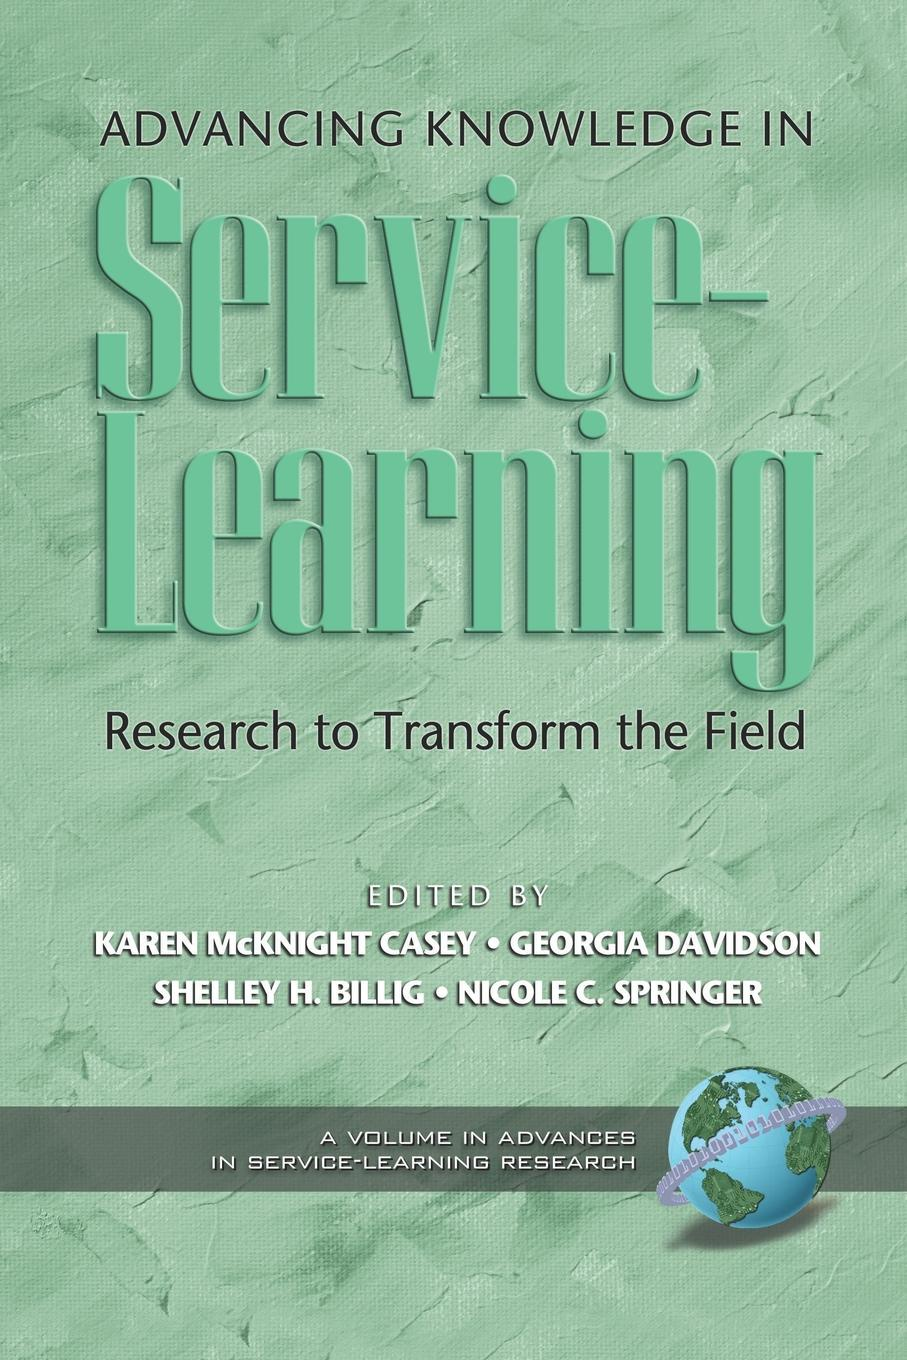 Advancing Knowledge in Service-Learning. Research to Transform the Field (PB)